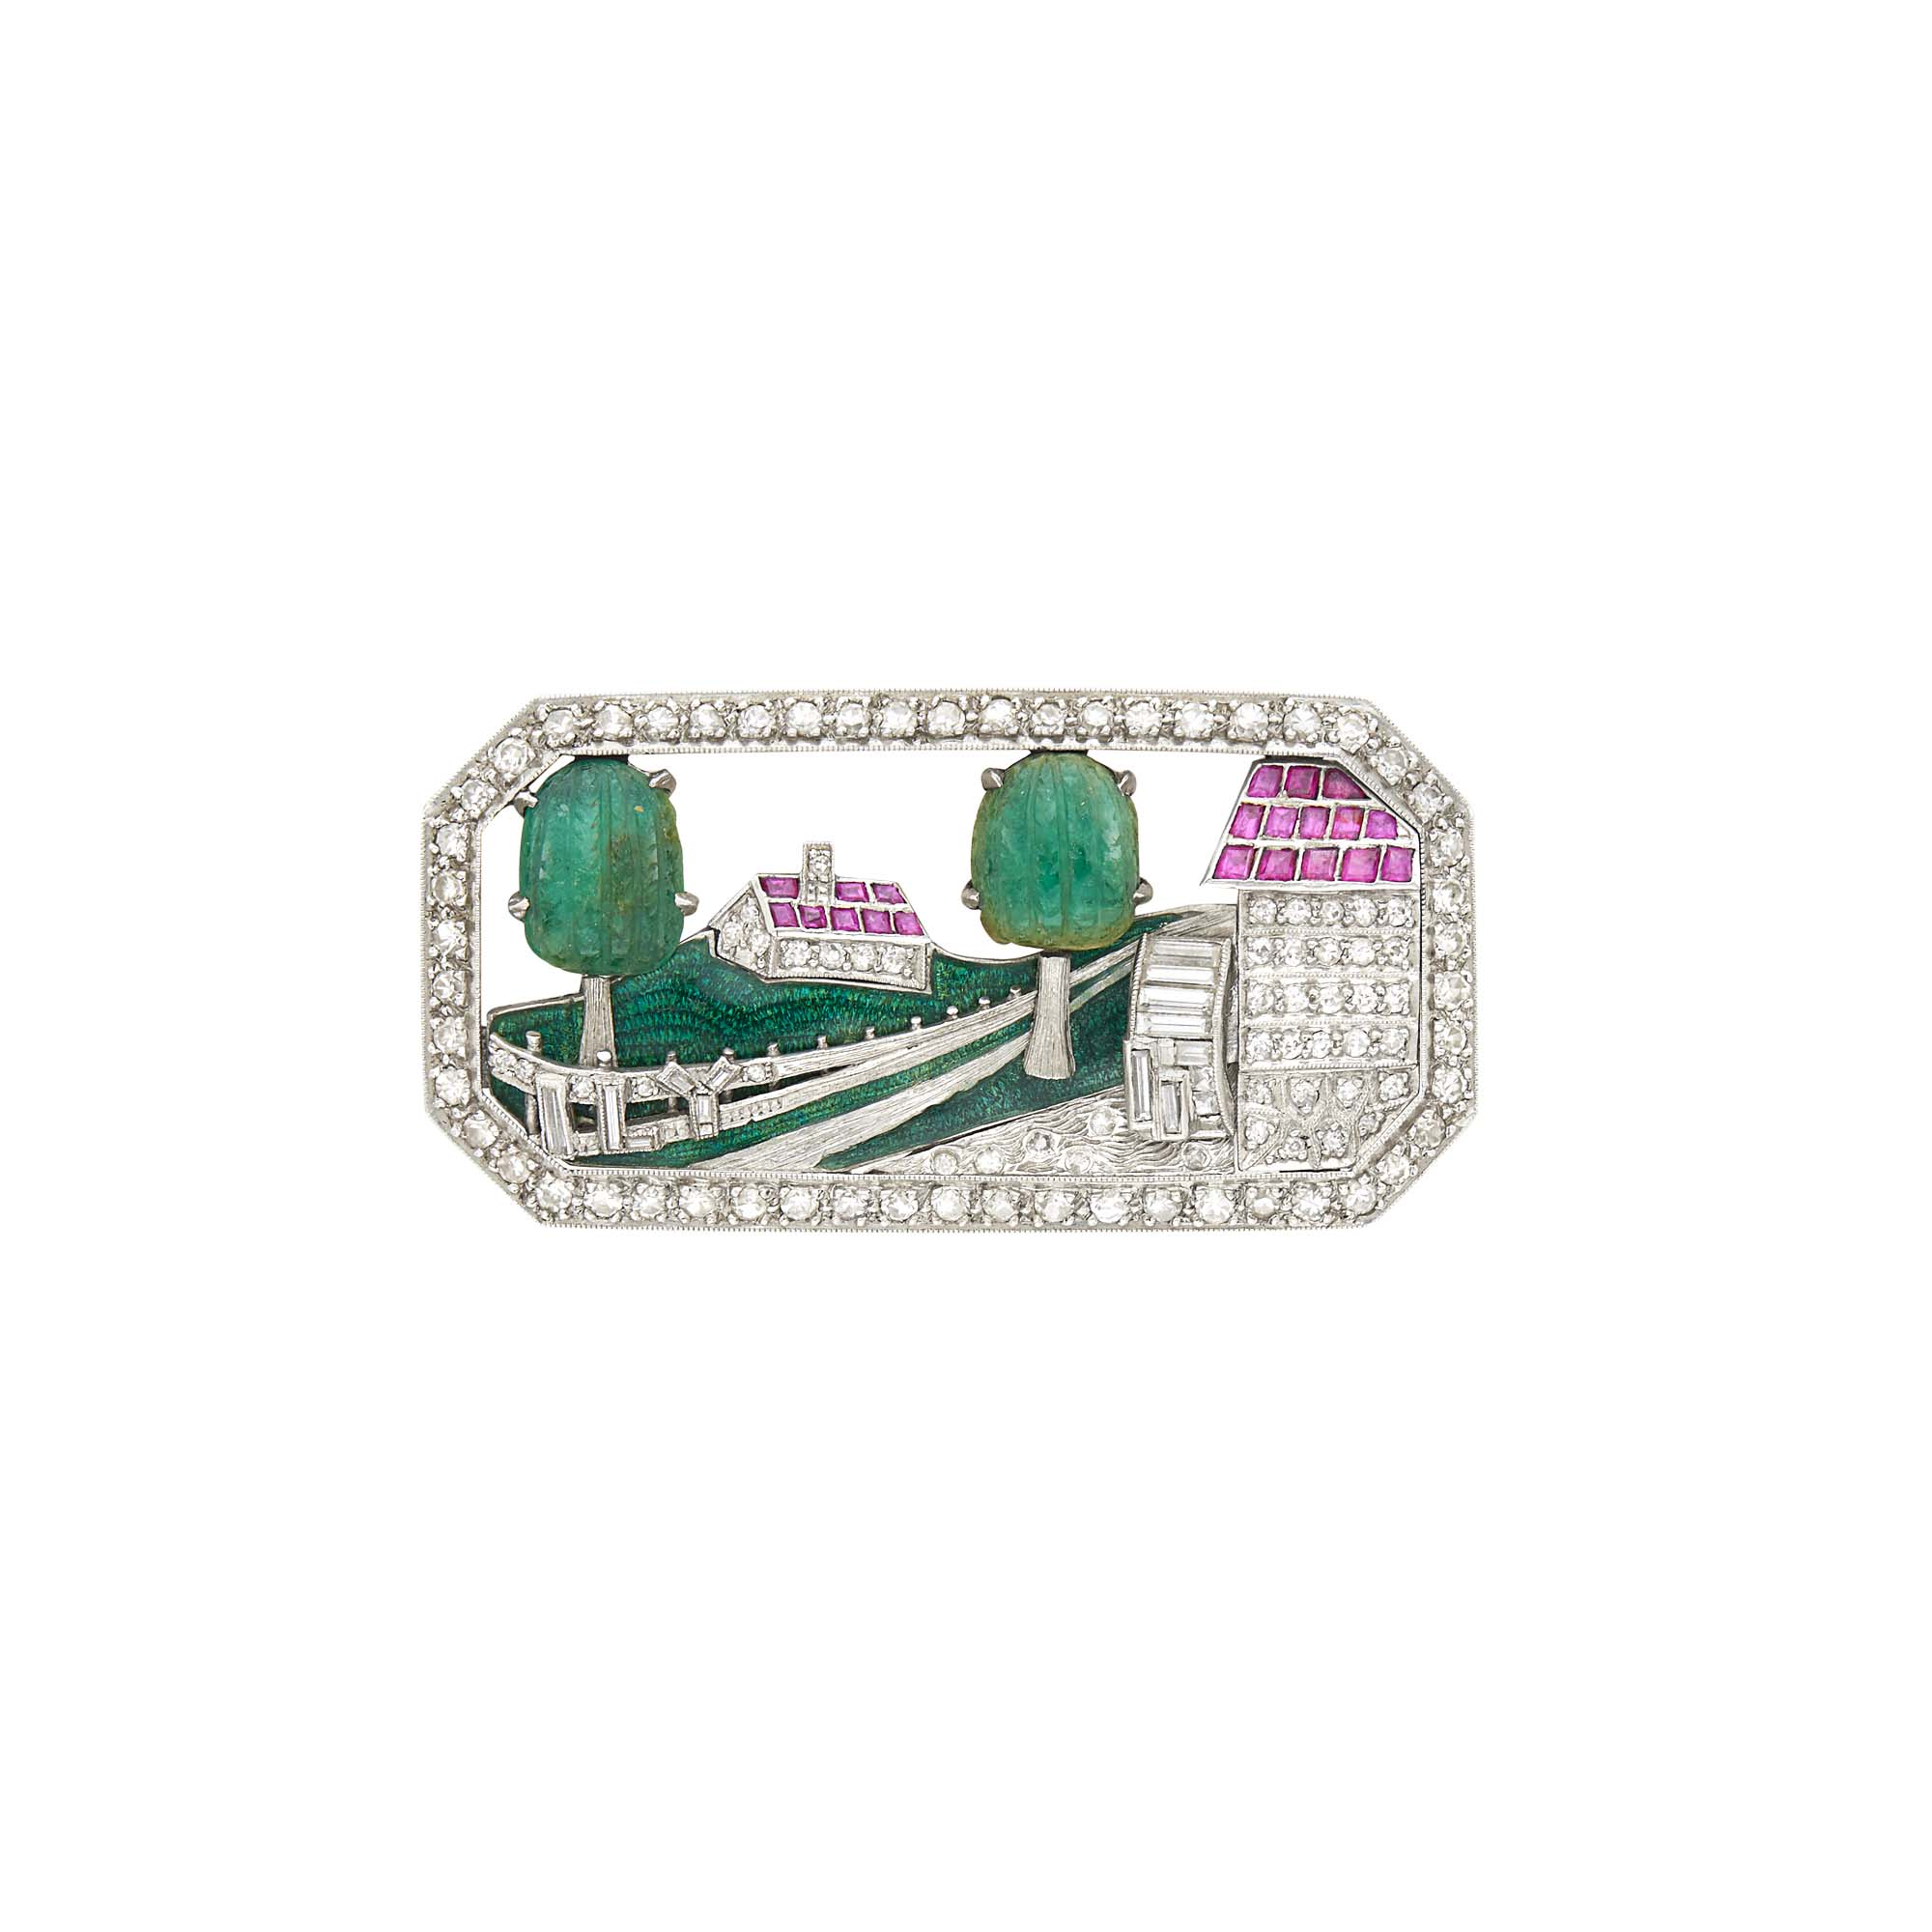 Lot image - Platinum, Frosted Rock Crystal, Carved Emerald, Diamond, Ruby and Enamel Country Home Brooch